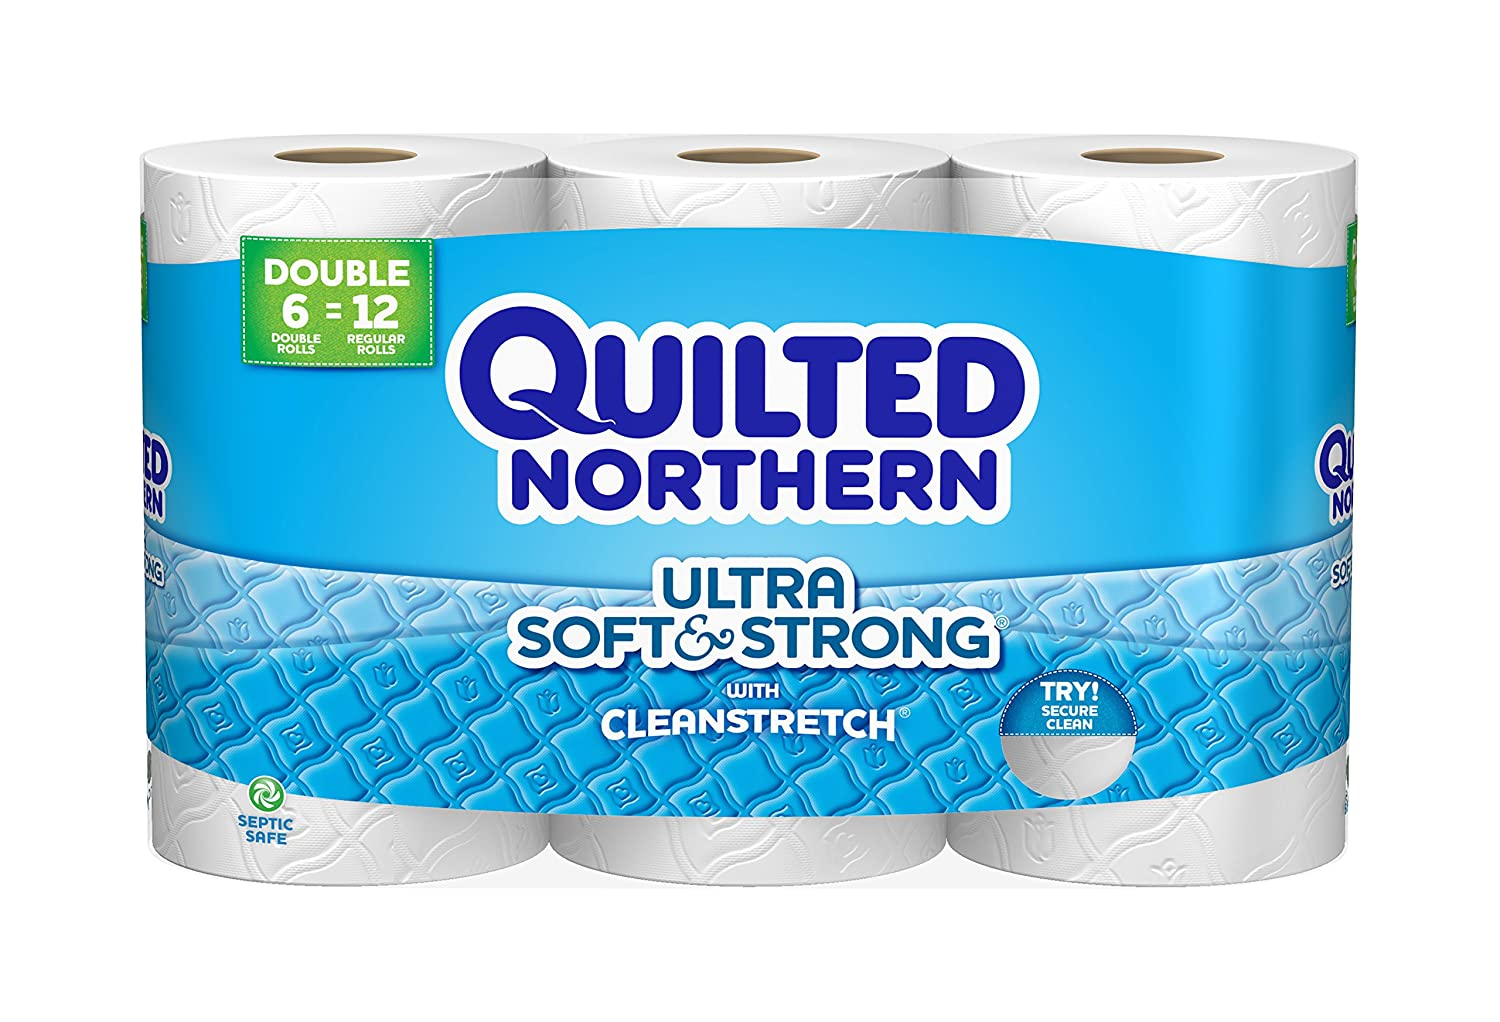 Quilted Northern Ultra Soft And Strong Double Rolls 6 Ct